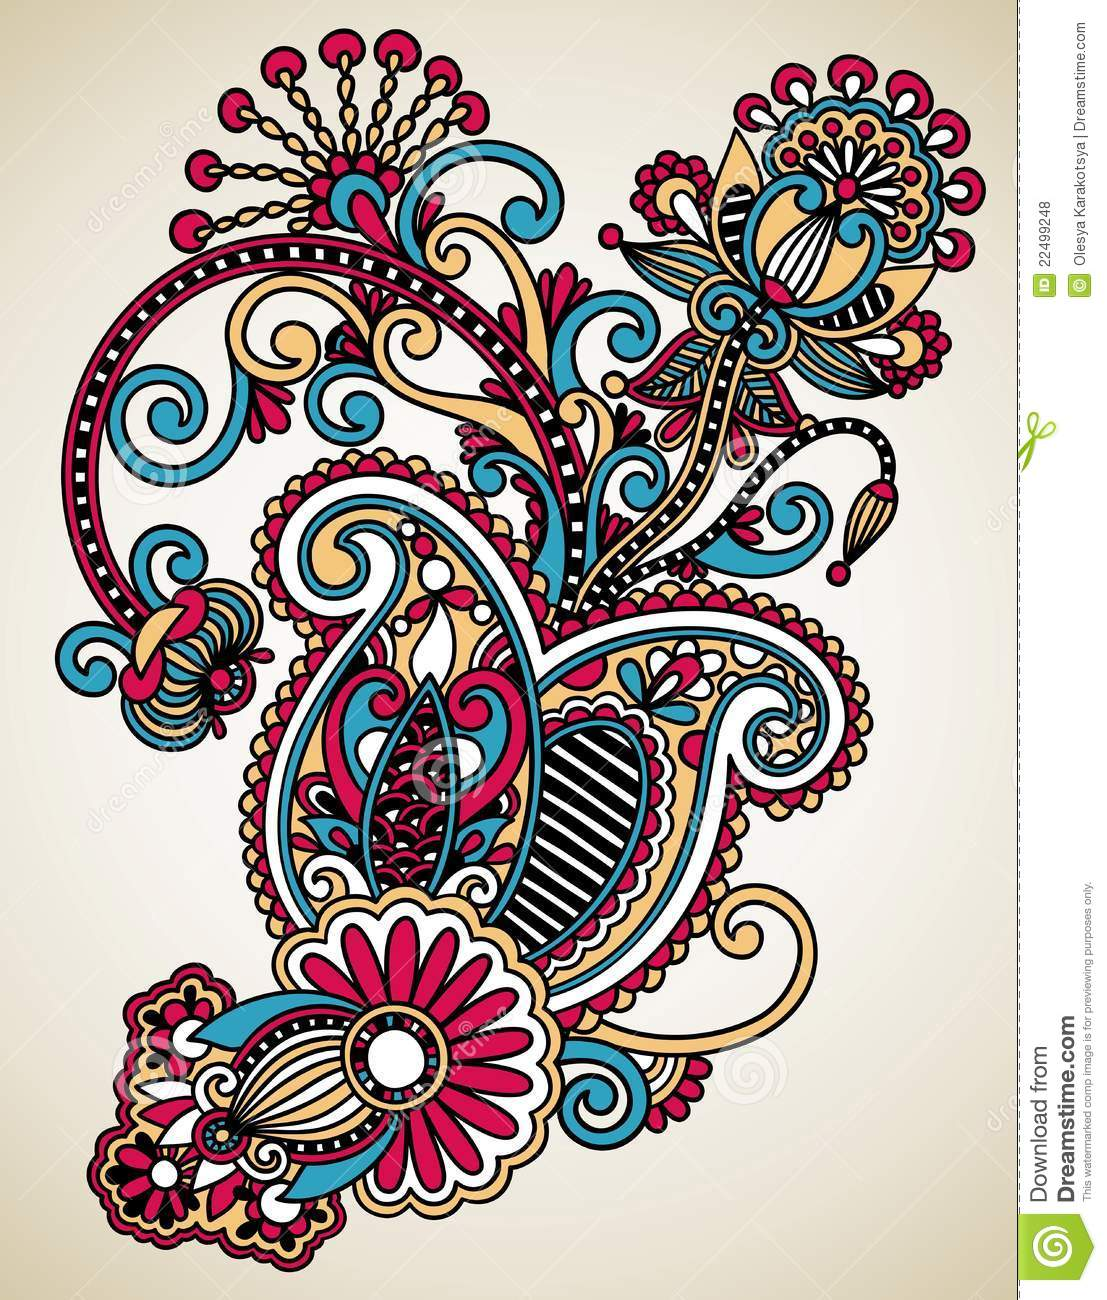 Floral Art Line Design : Line art ornate flower design royalty free stock photos